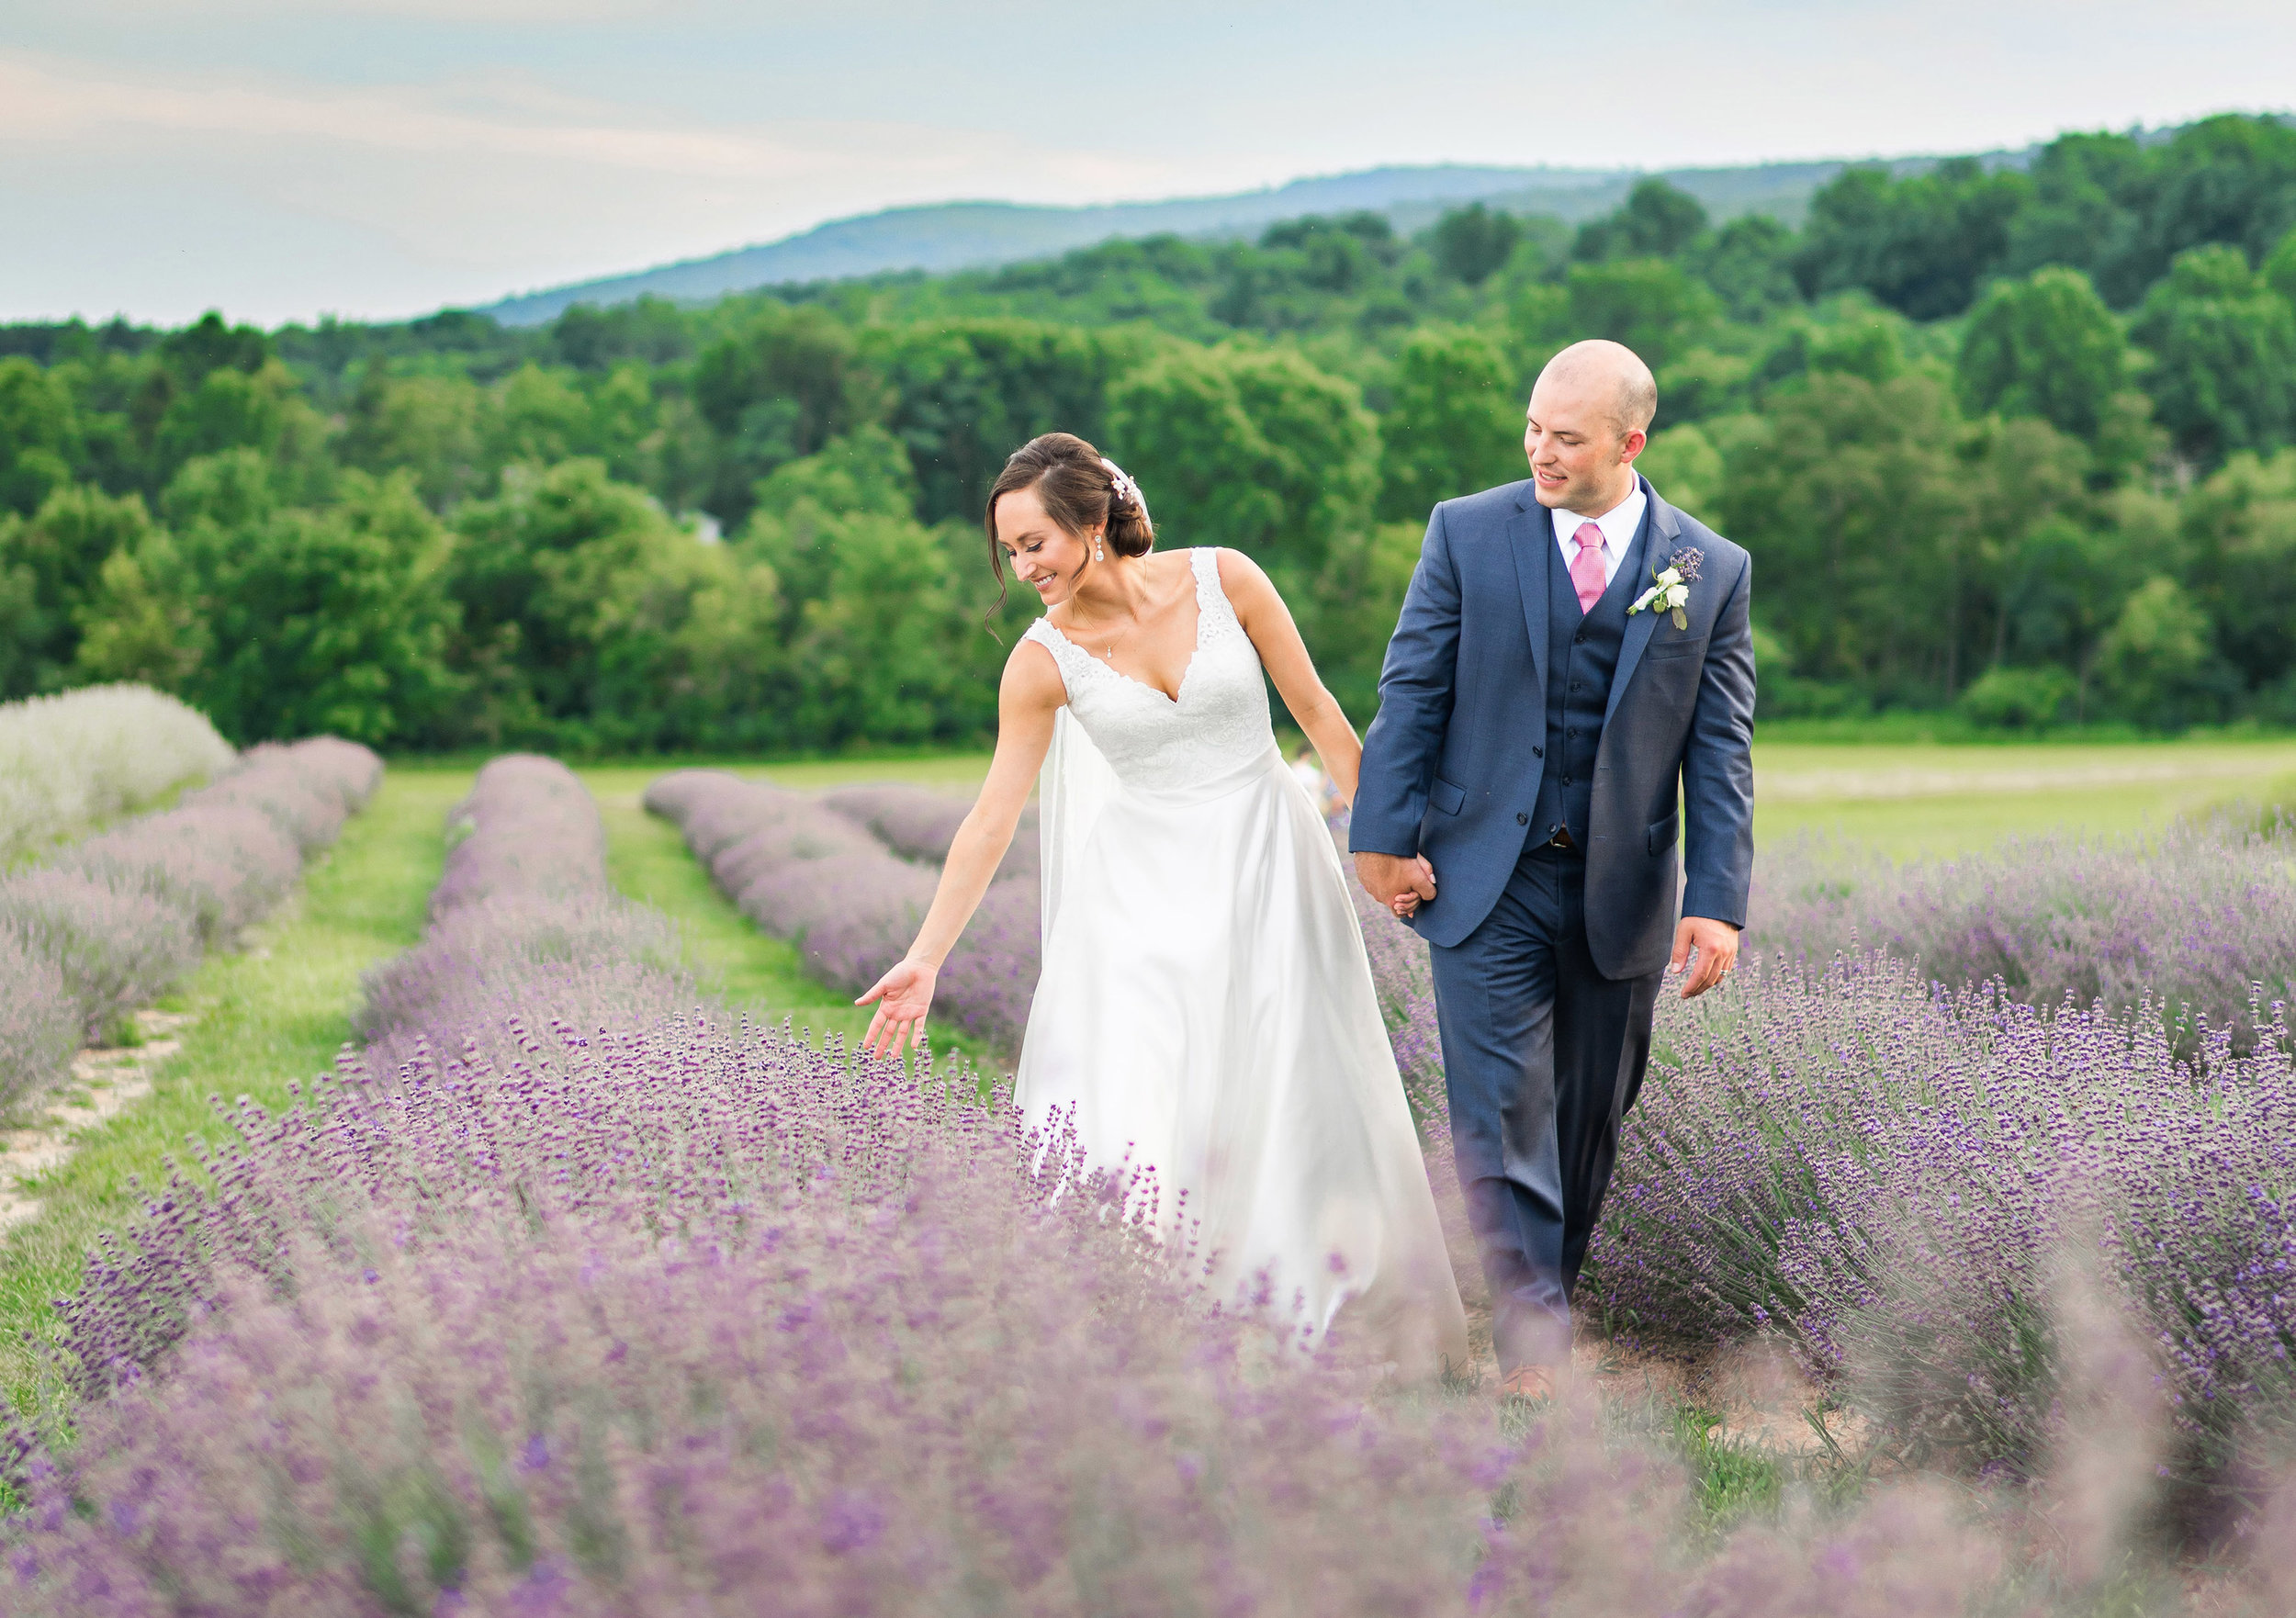 Springfield Manor Winery Distillery lavender fields with bride and groom